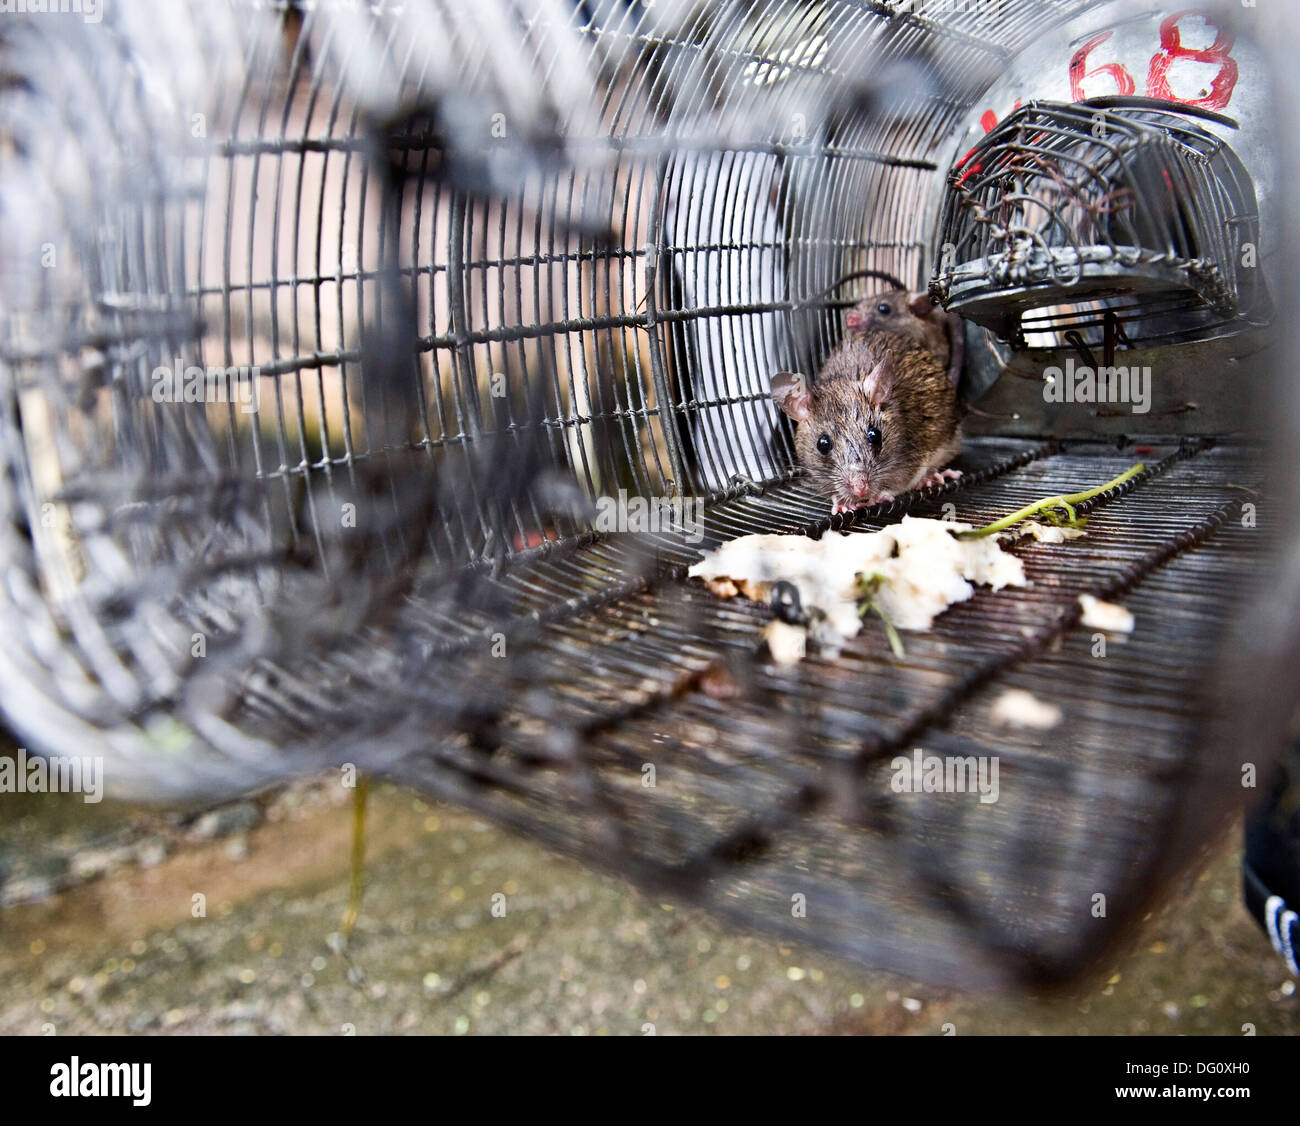 Rat In A Trap Stock Photos & Rat In A Trap Stock Images - Page 3 - Alamy